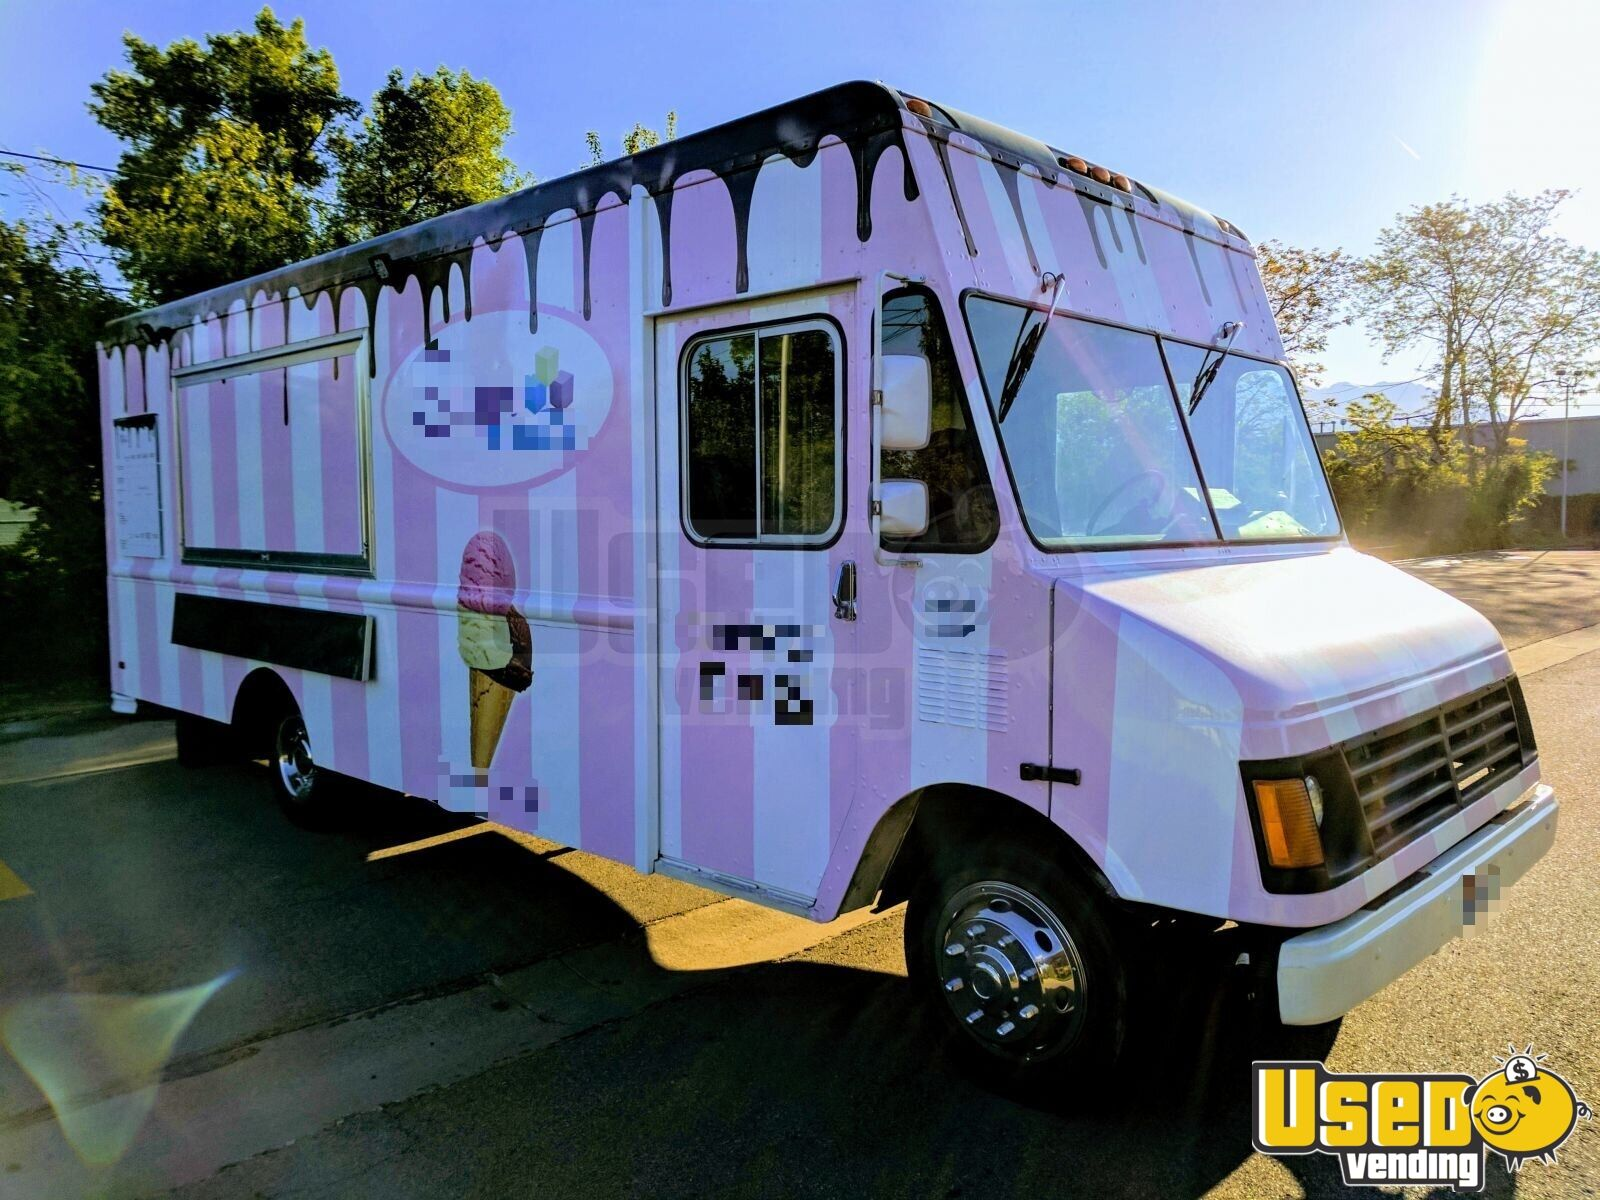 1995 Chevy P30 Food Truck Insulated Walls Utah Diesel Engine for Sale - 4